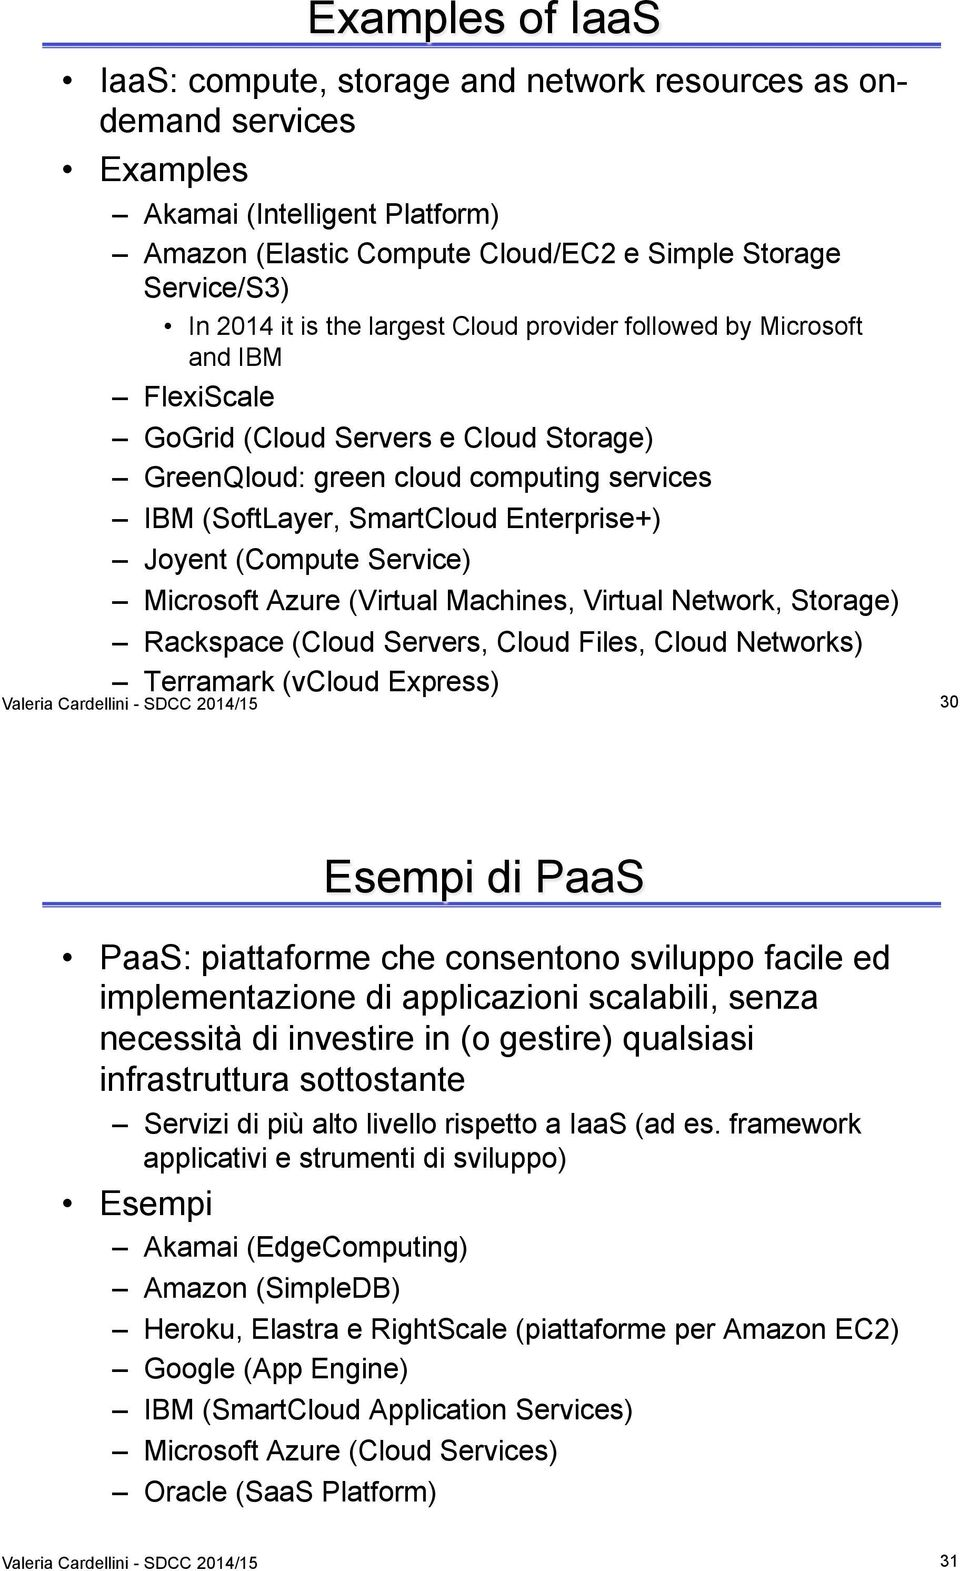 (Compute Service) Microsoft Azure (Virtual Machines, Virtual Network, Storage) Rackspace (Cloud Servers, Cloud Files, Cloud Networks) Terramark (vcloud Express) Valeria Cardellini - SDCC 2014/15 30